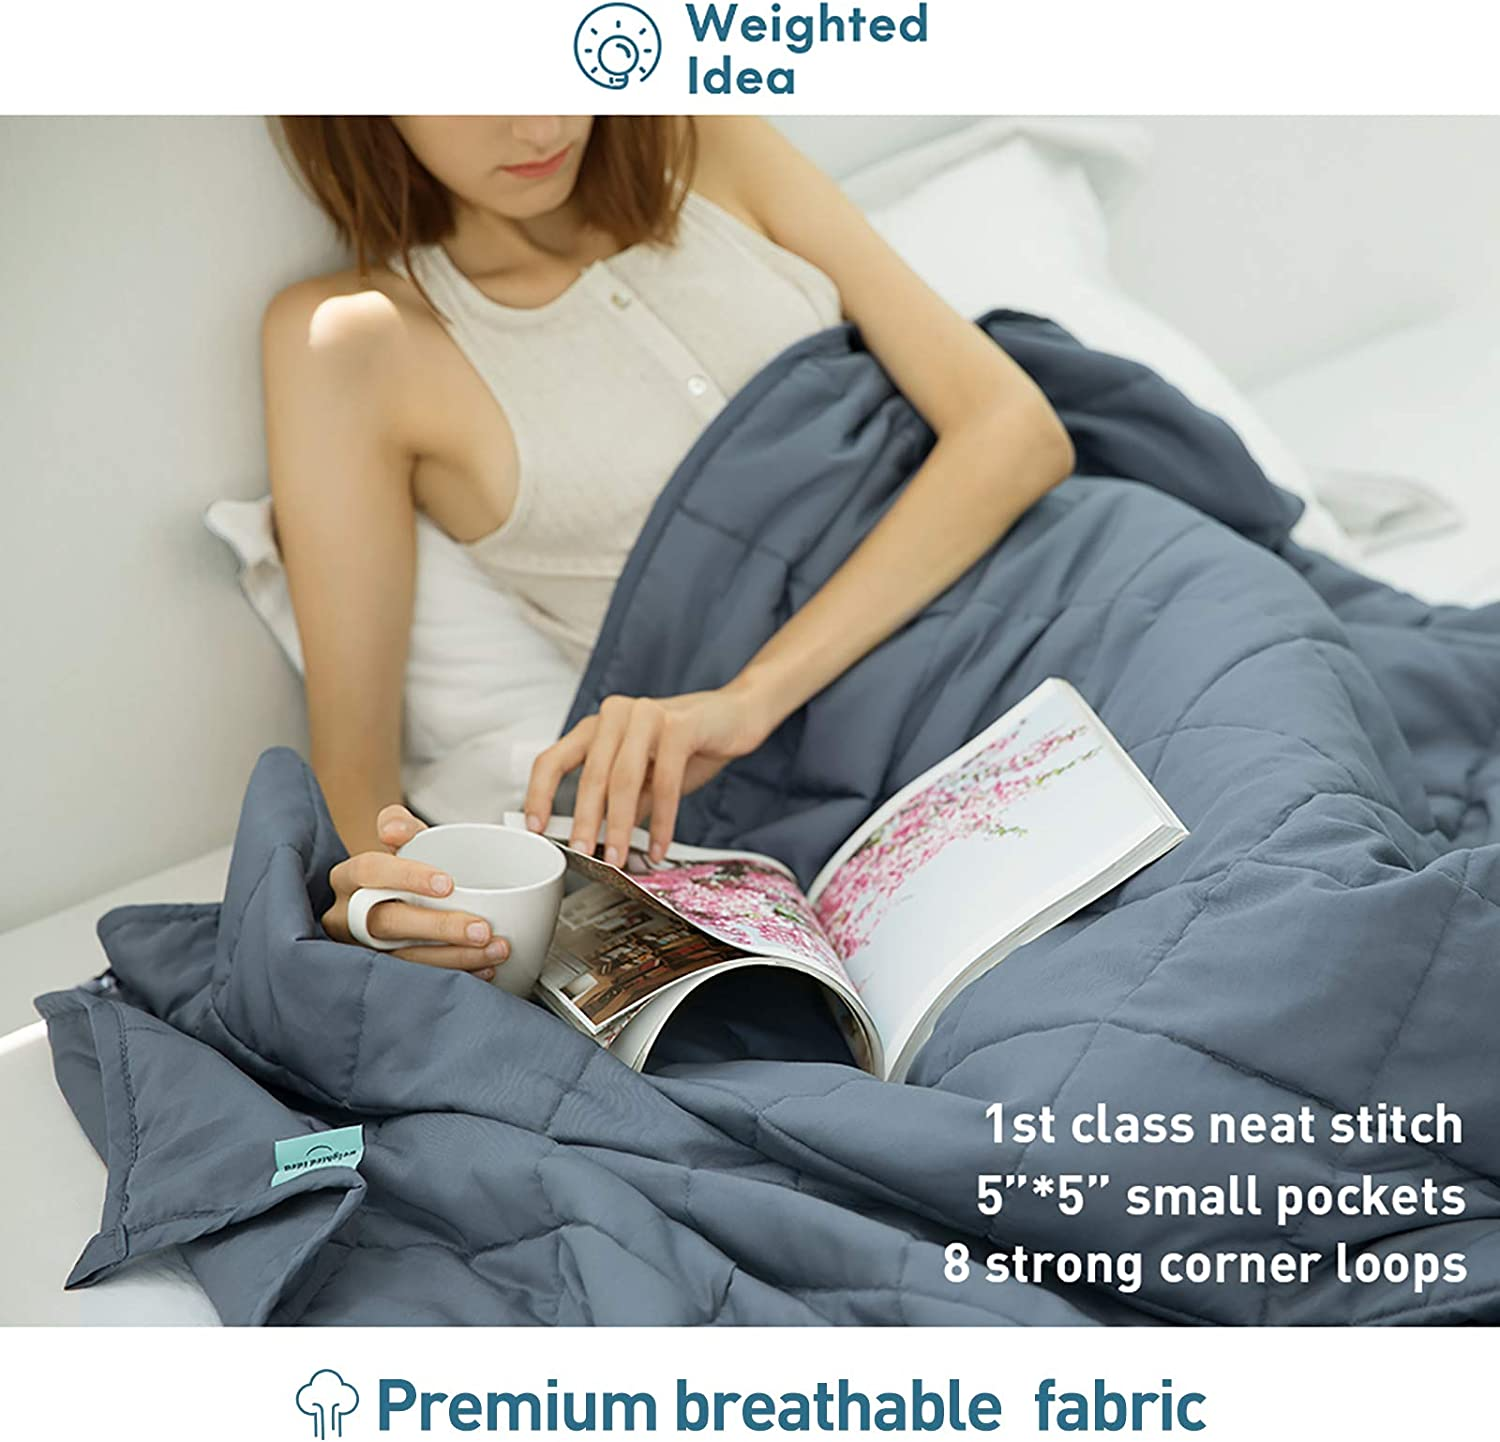 best weighted blanket consumer reports